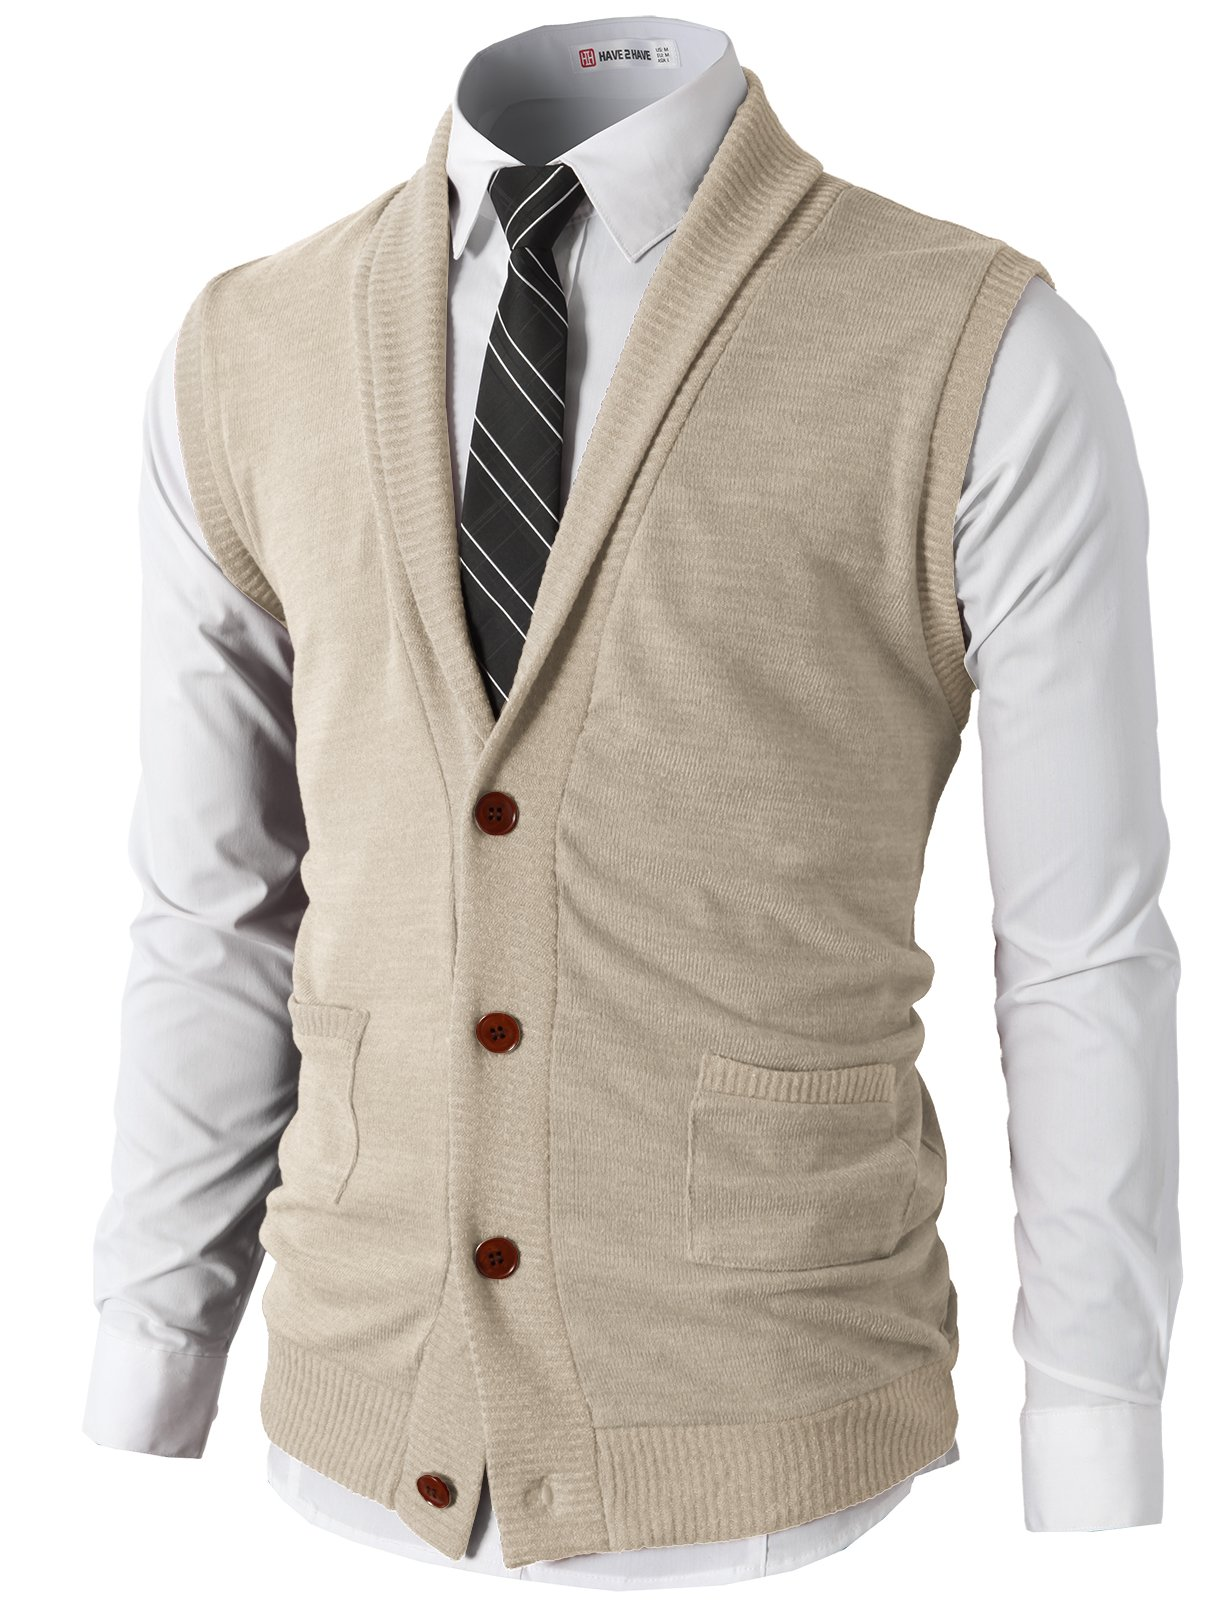 H2H Men's Daily Casual Shawl Collar Knitted Slim Fit Vest Ivory US M/Asia L (CMOV034) by H2H